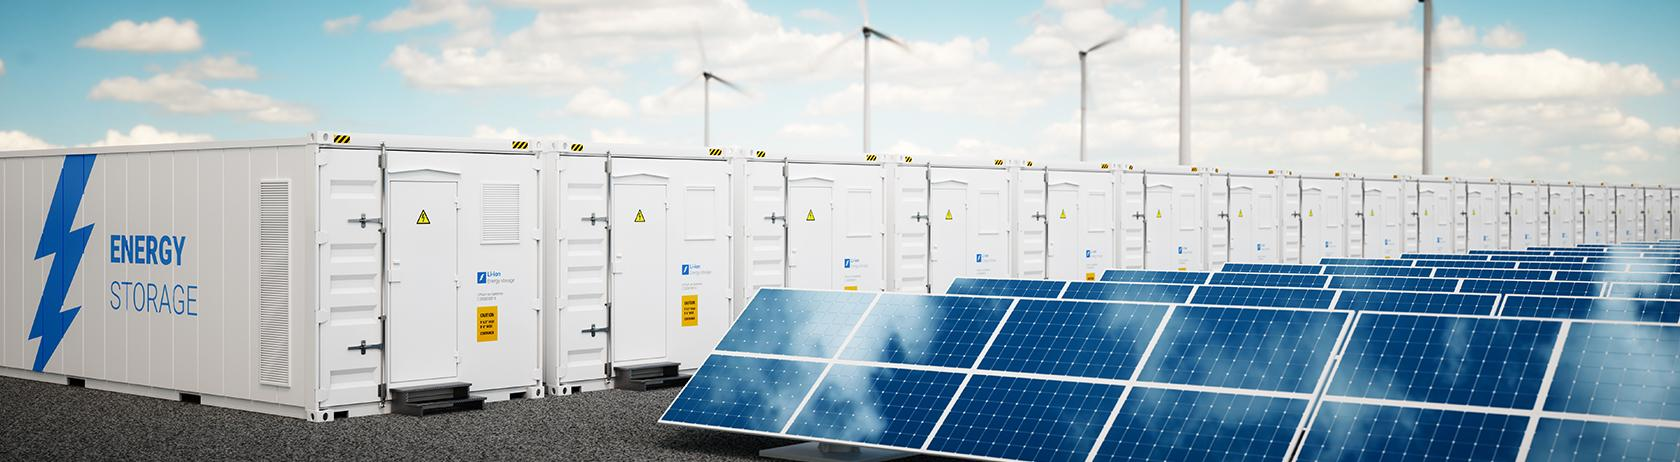 Solar panels and energy storage containes